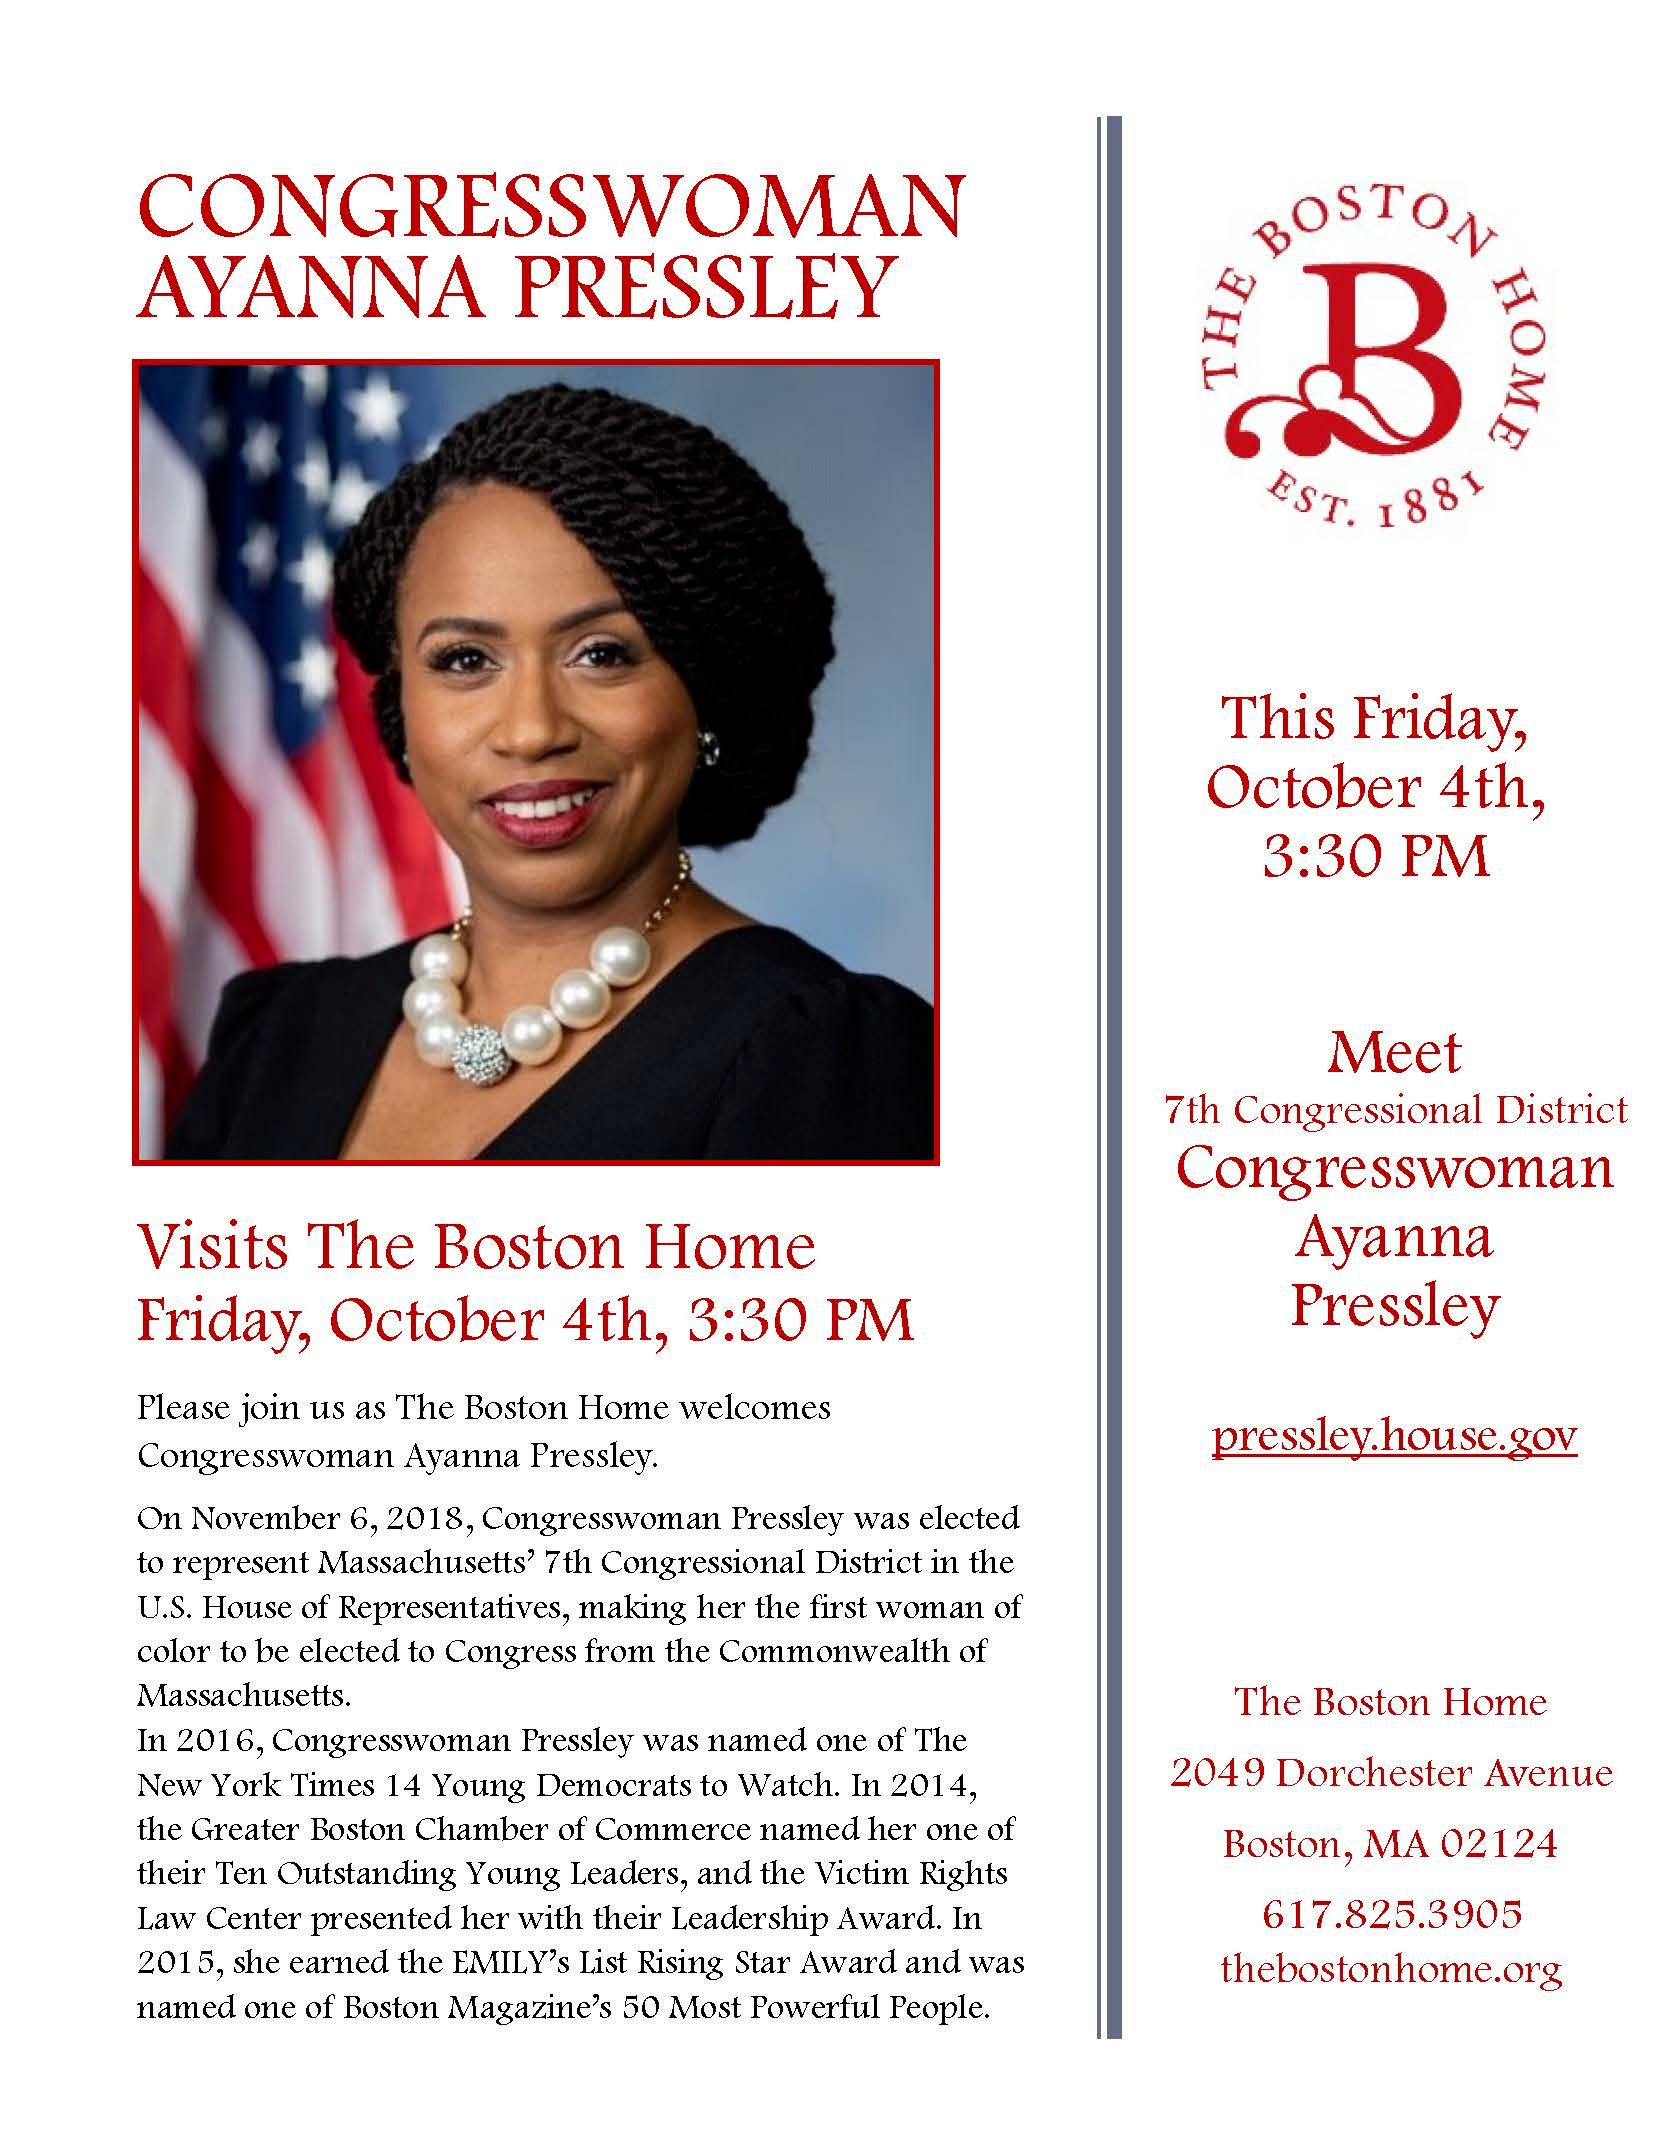 Congresswoman Ayanna Pressley to Visit The Boston Home, Friday, October 4, 2019 at 3:30 pm